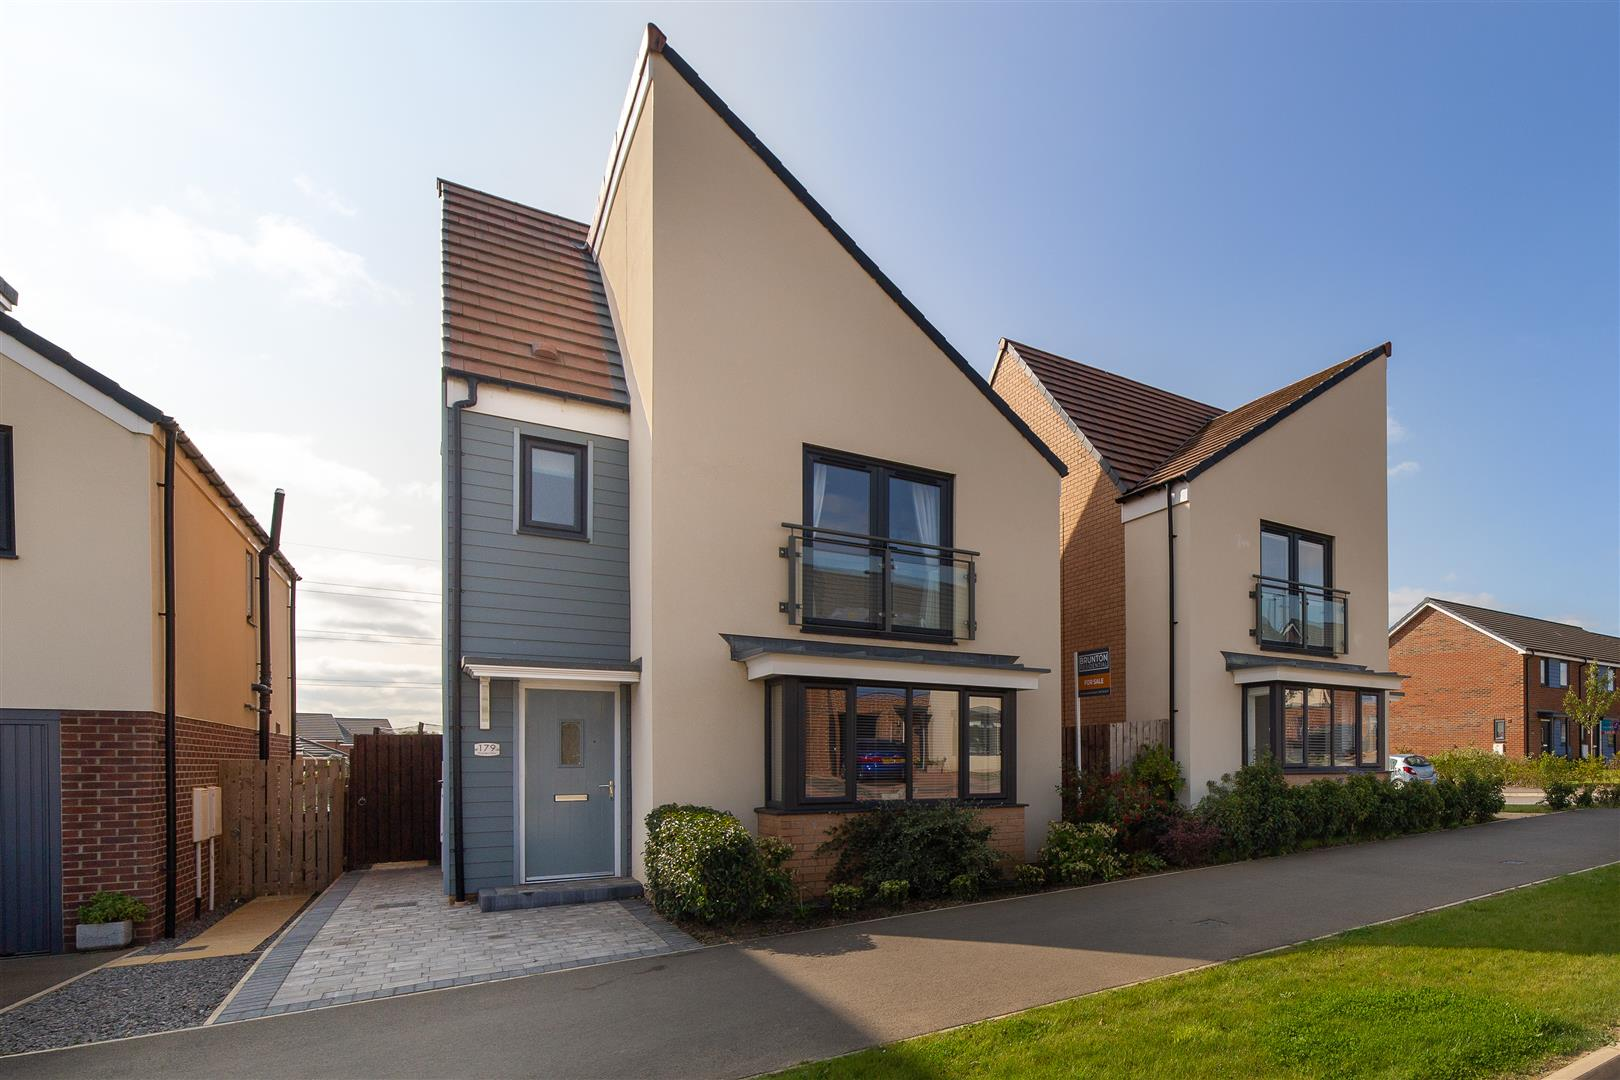 4 bed detached house for sale in Newcastle Upon Tyne, NE13 9DS  - Property Image 22